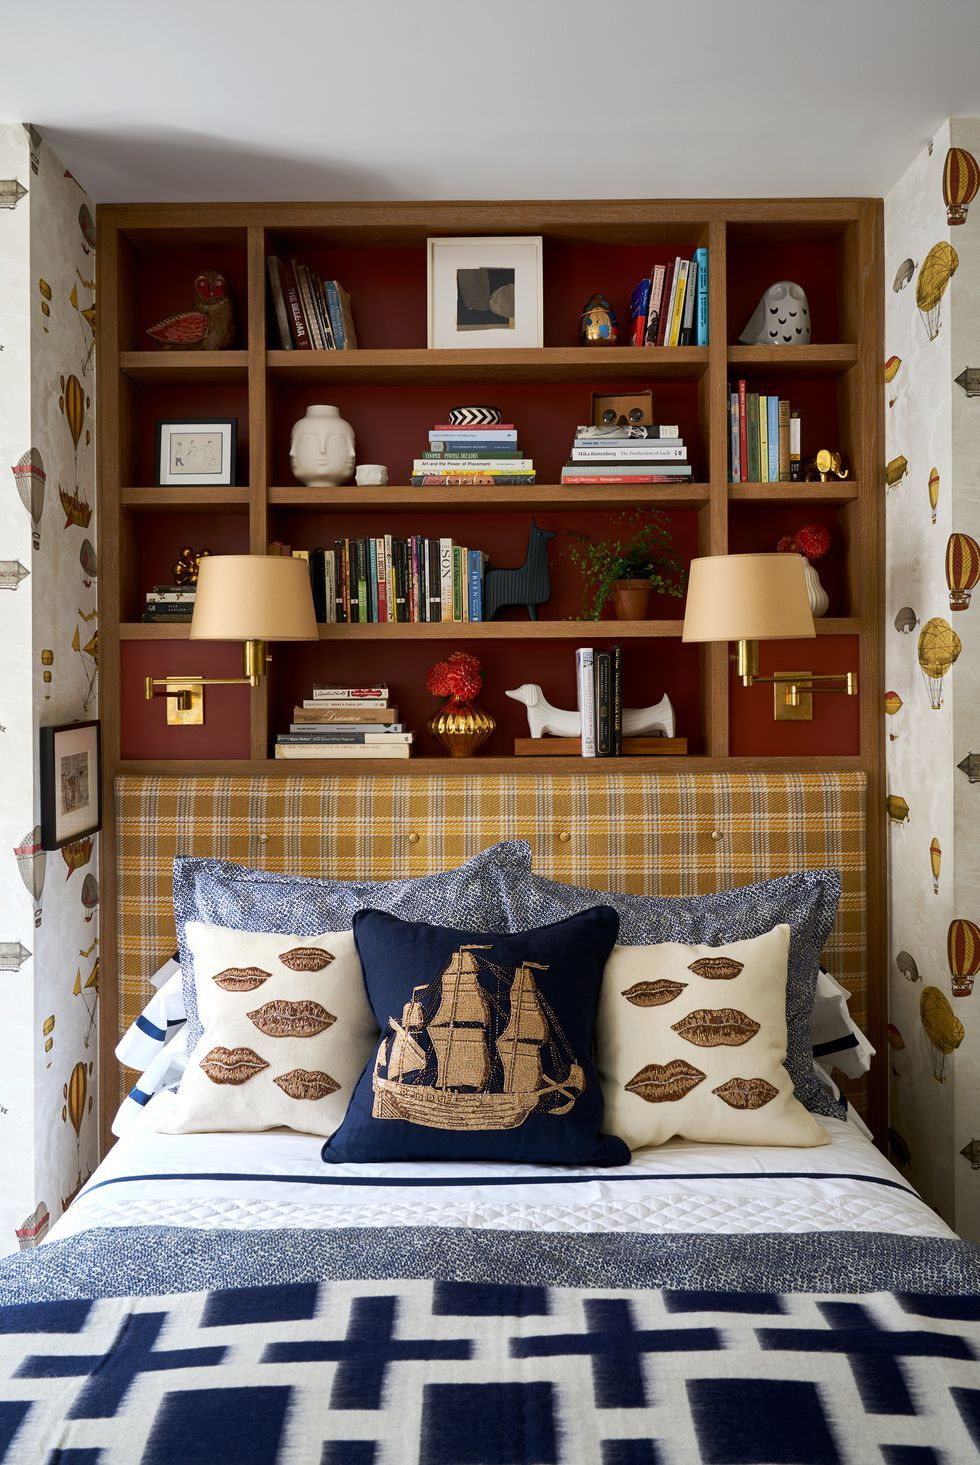 Beautiful Small Bedroom Ideas New 25 Small Bedroom Design Ideas How to Decorate A Small Bedroom